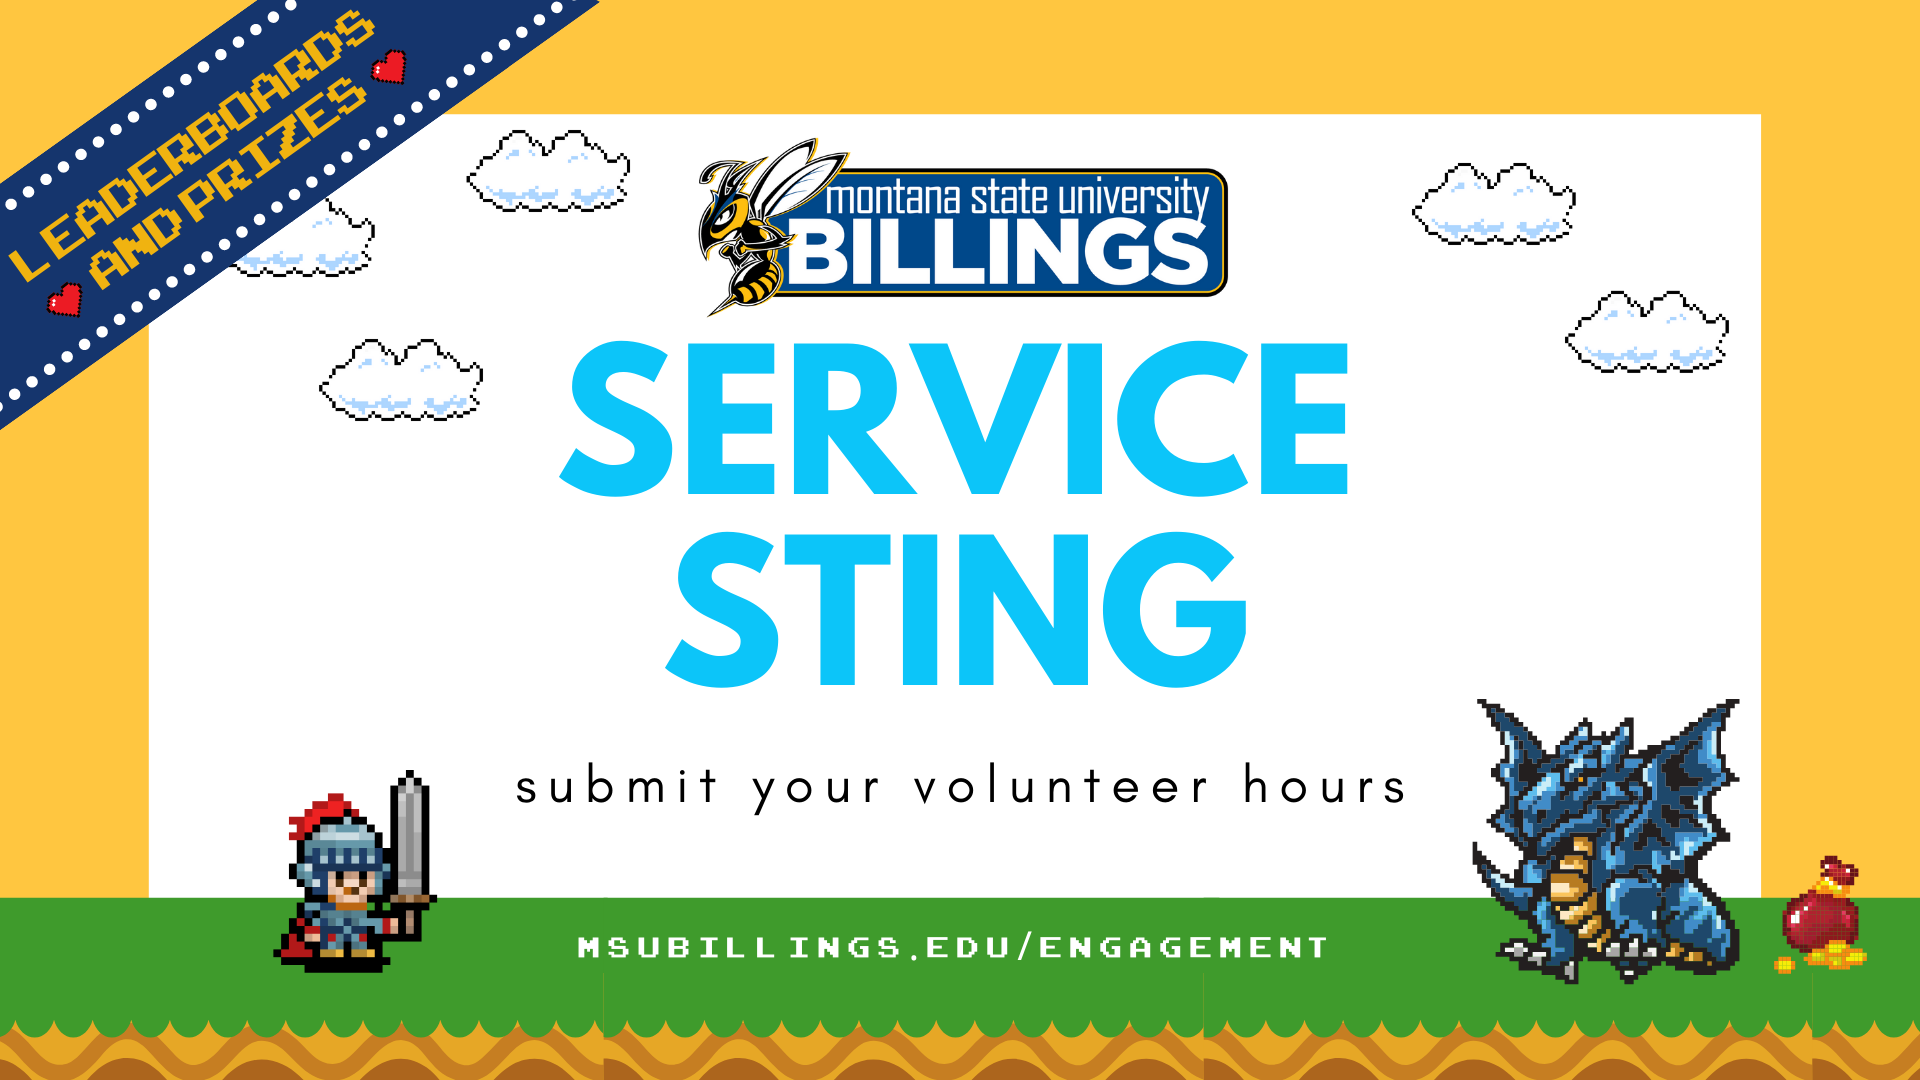 Service Sting. Submit your volunteer hours. Leaderboard and prizes